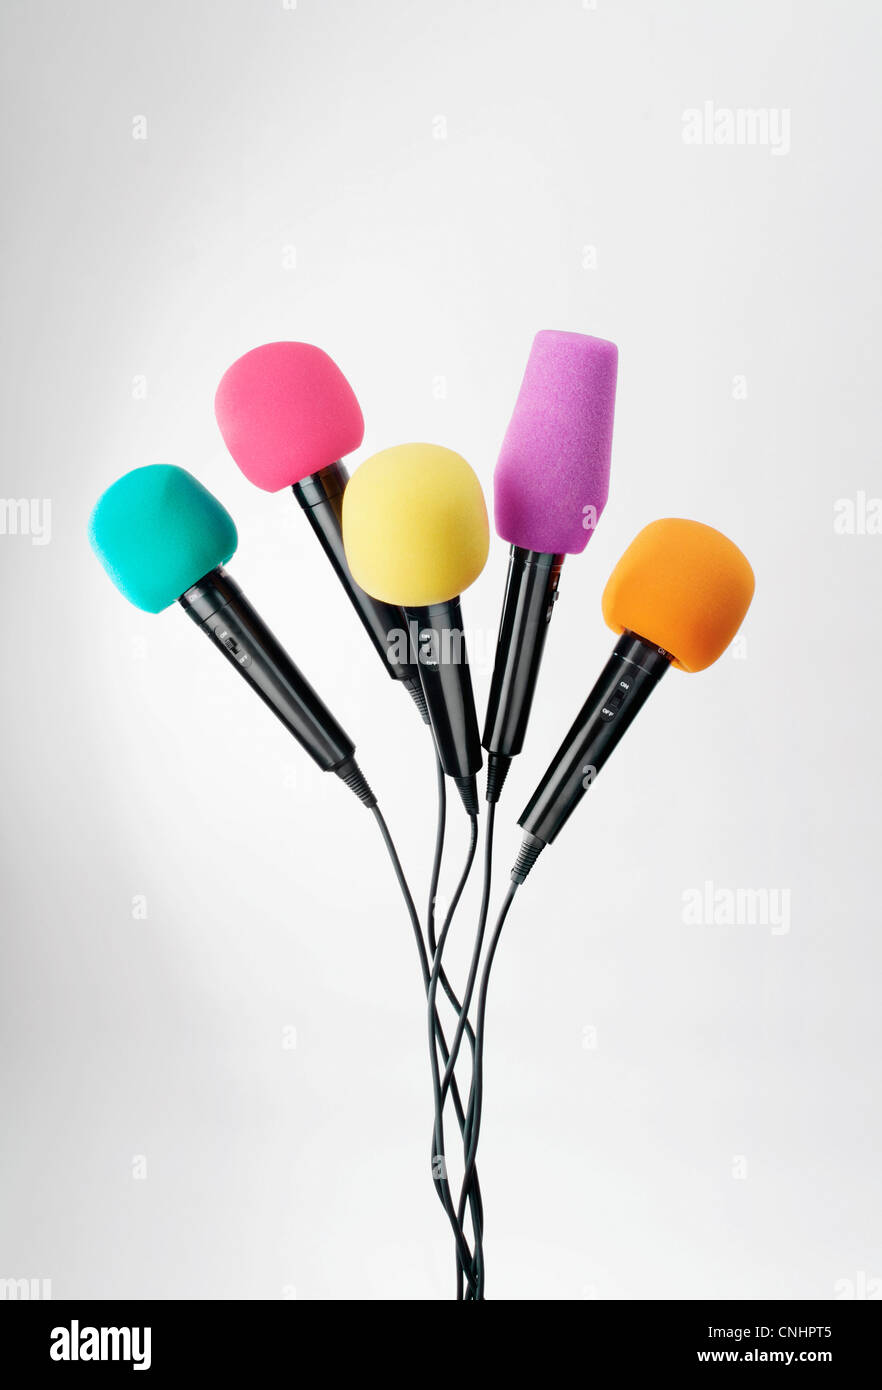 Various colored microphones - Stock Image